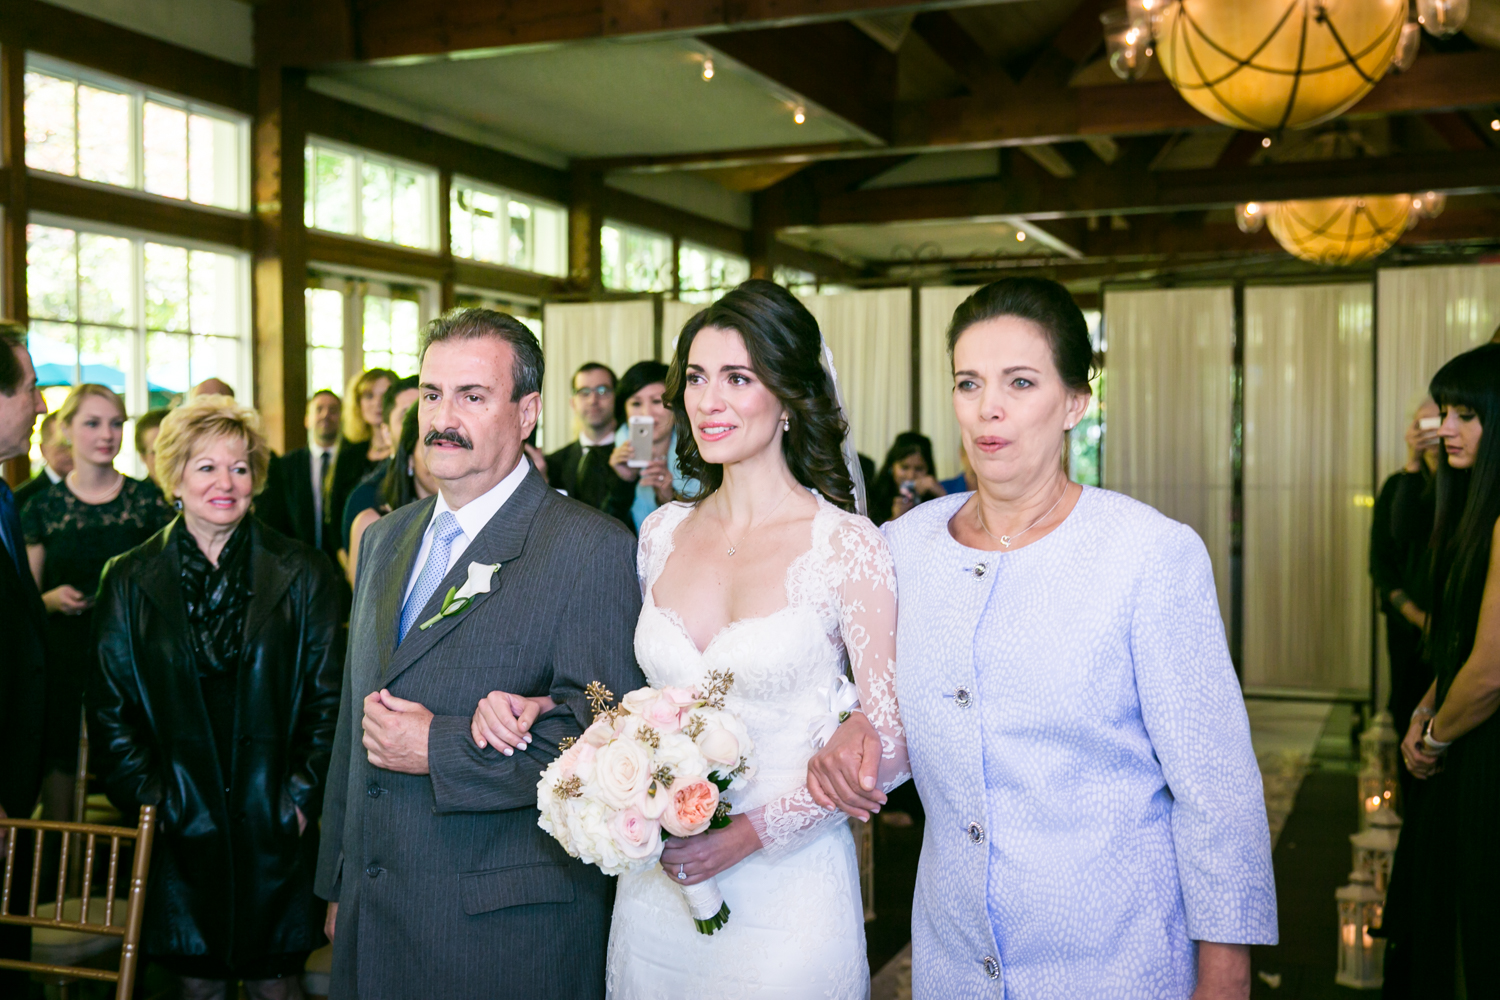 Bride walking down aisle accompanied by both parents at a Loeb Boathouse wedding in Central Park